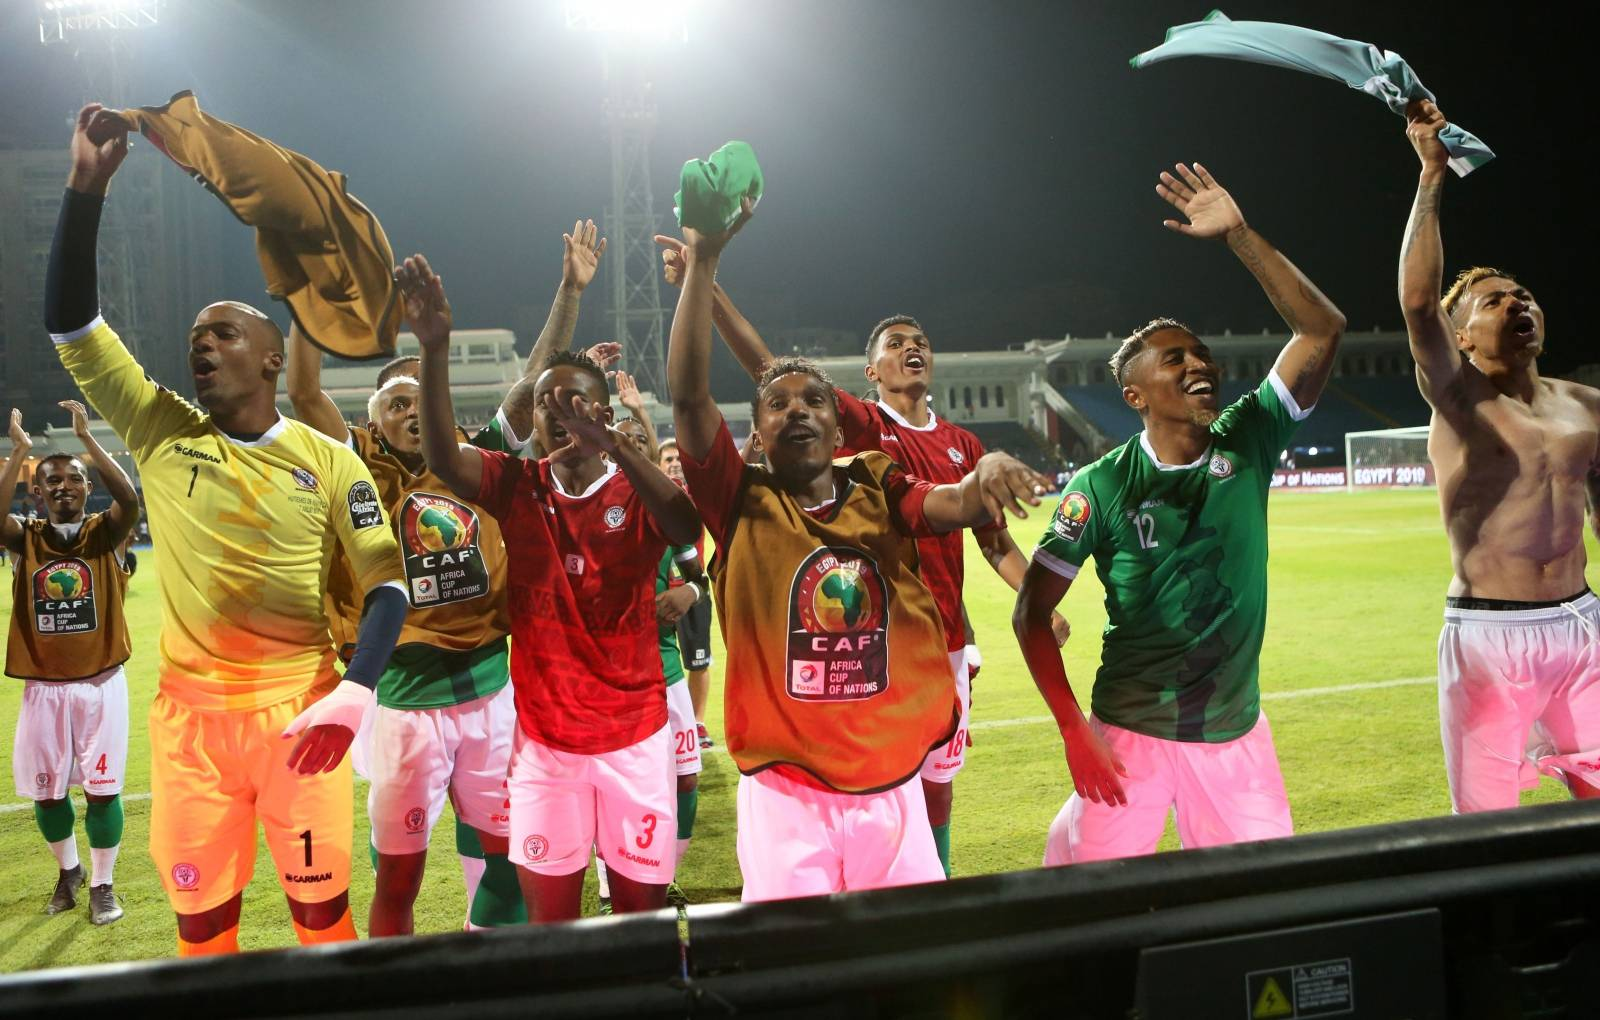 Football - Africa Cup of Nations 2019 Finals - Last 16 - Madagascar v DR Congo - Alexandria - Egypt